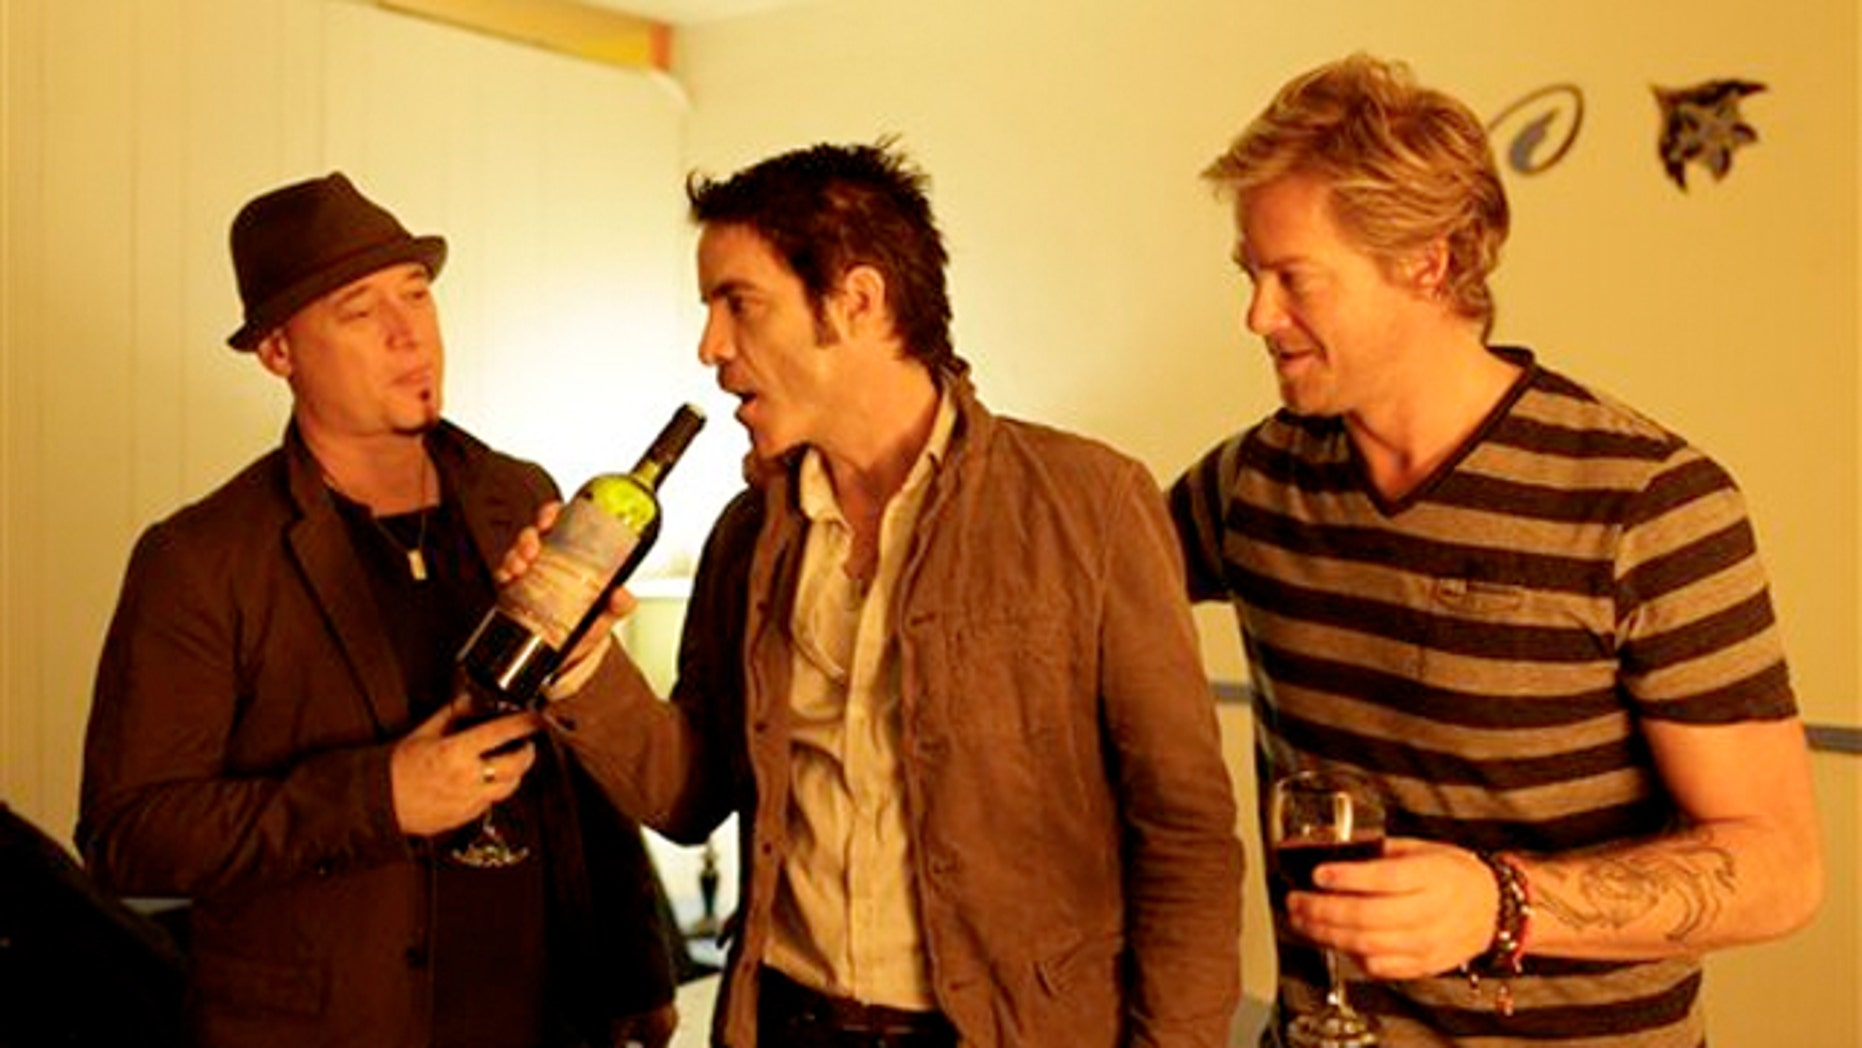 April 11, 2012: From left, Jimmy Stafford, Patrick Monahan, and Scott Underwood of the band Train sample some of their wine.